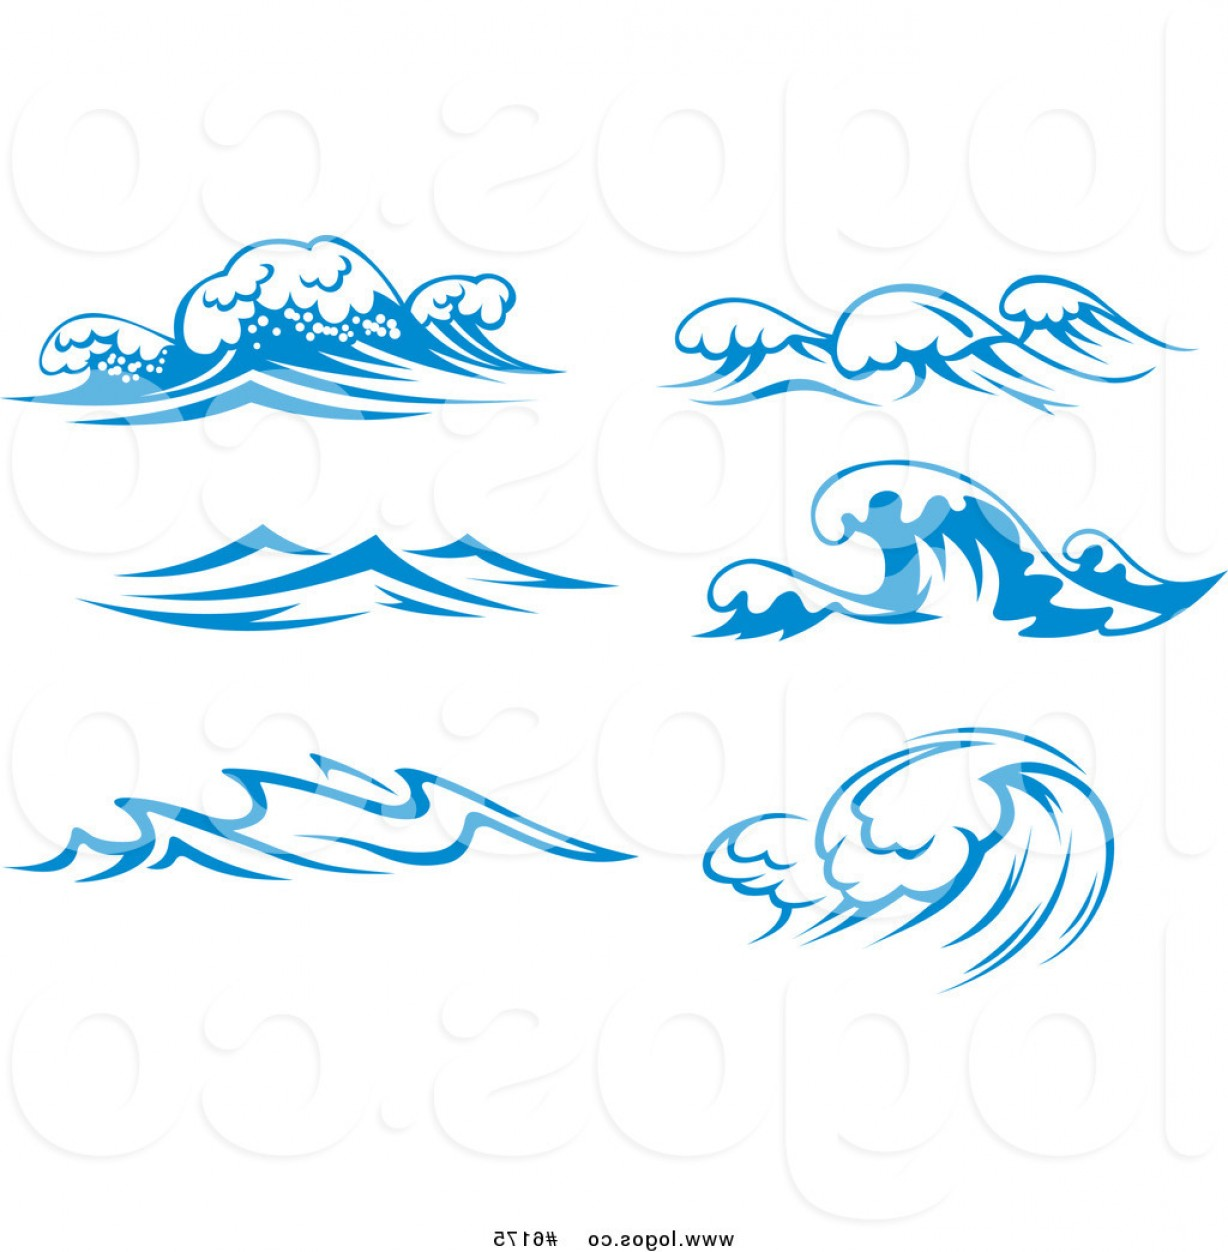 Ocean Water Clip Art Vector: Royalty Free Clip Art Vector Logos Of Blue Ocean Surf Waves By Vector Tradition Sm